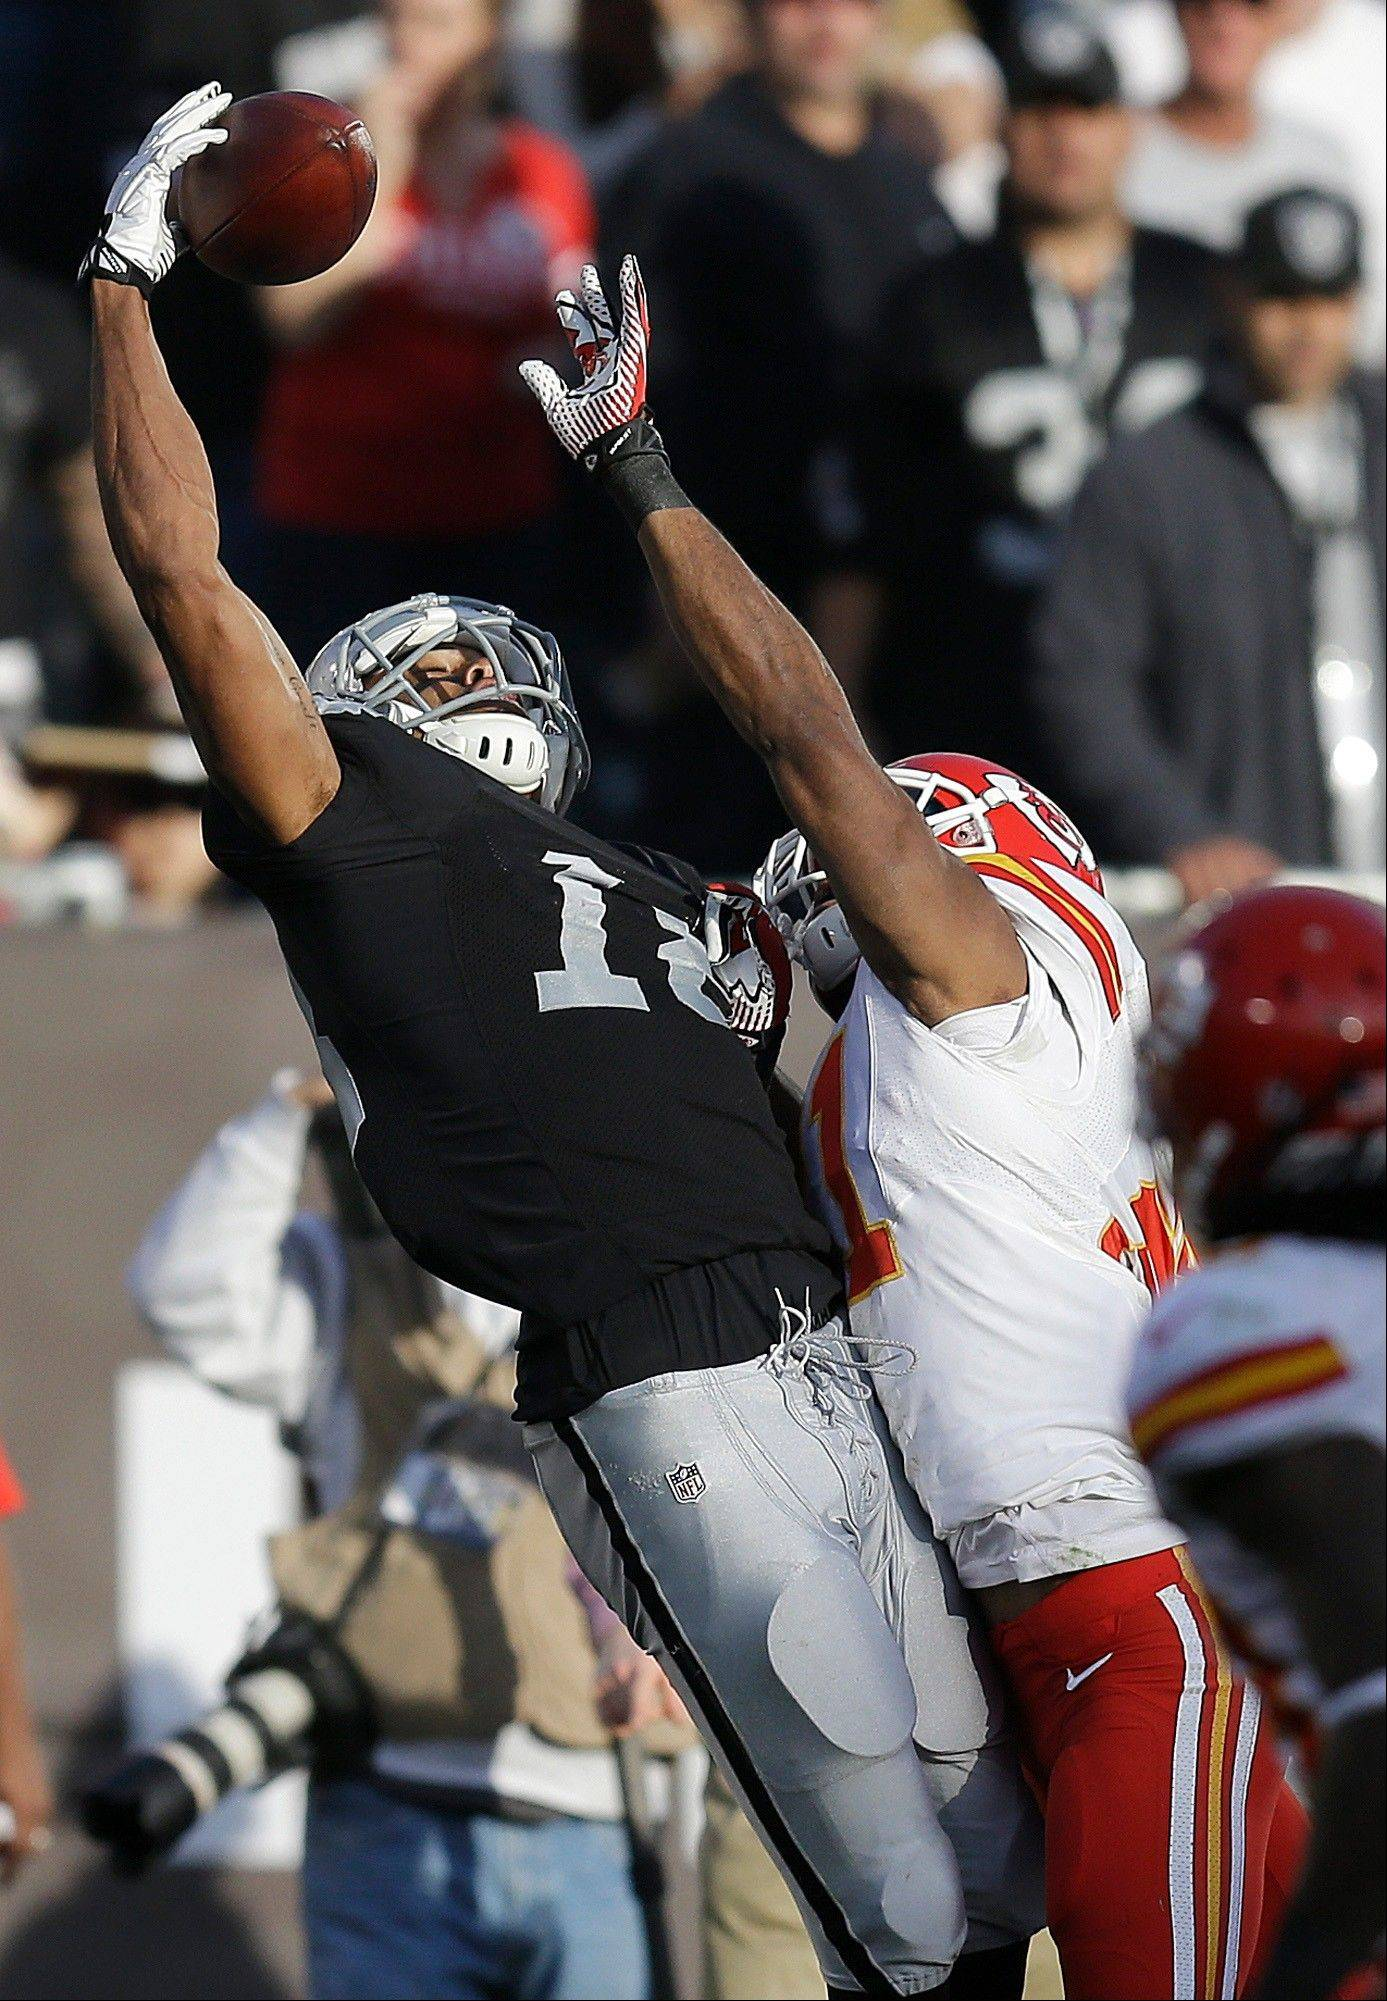 Oakland Raiders wide receiver Andre Holmes, left, catches a pass over Kansas City Chiefs cornerback Marcus Cooper during the third quarter of an NFL football game in Oakland, Calif., Sunday, Dec. 15, 2013.